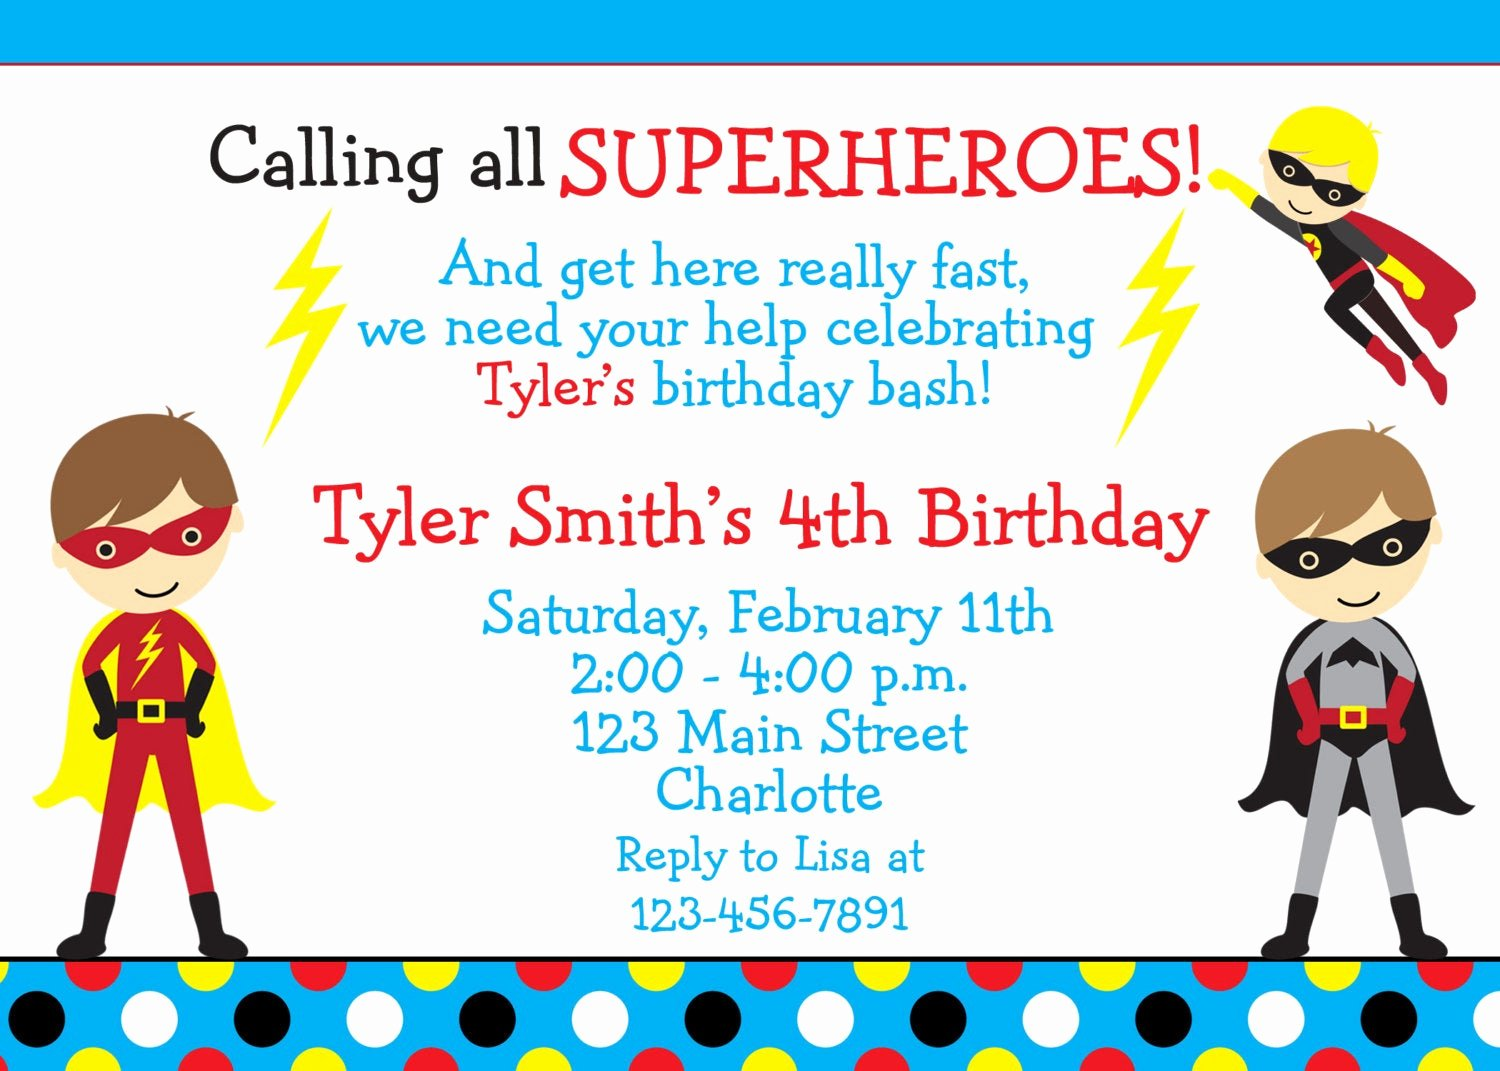 Superhero Girl Birthday Invitations Best Of Superhero Birthday Party Invitation Super Hero Superheros